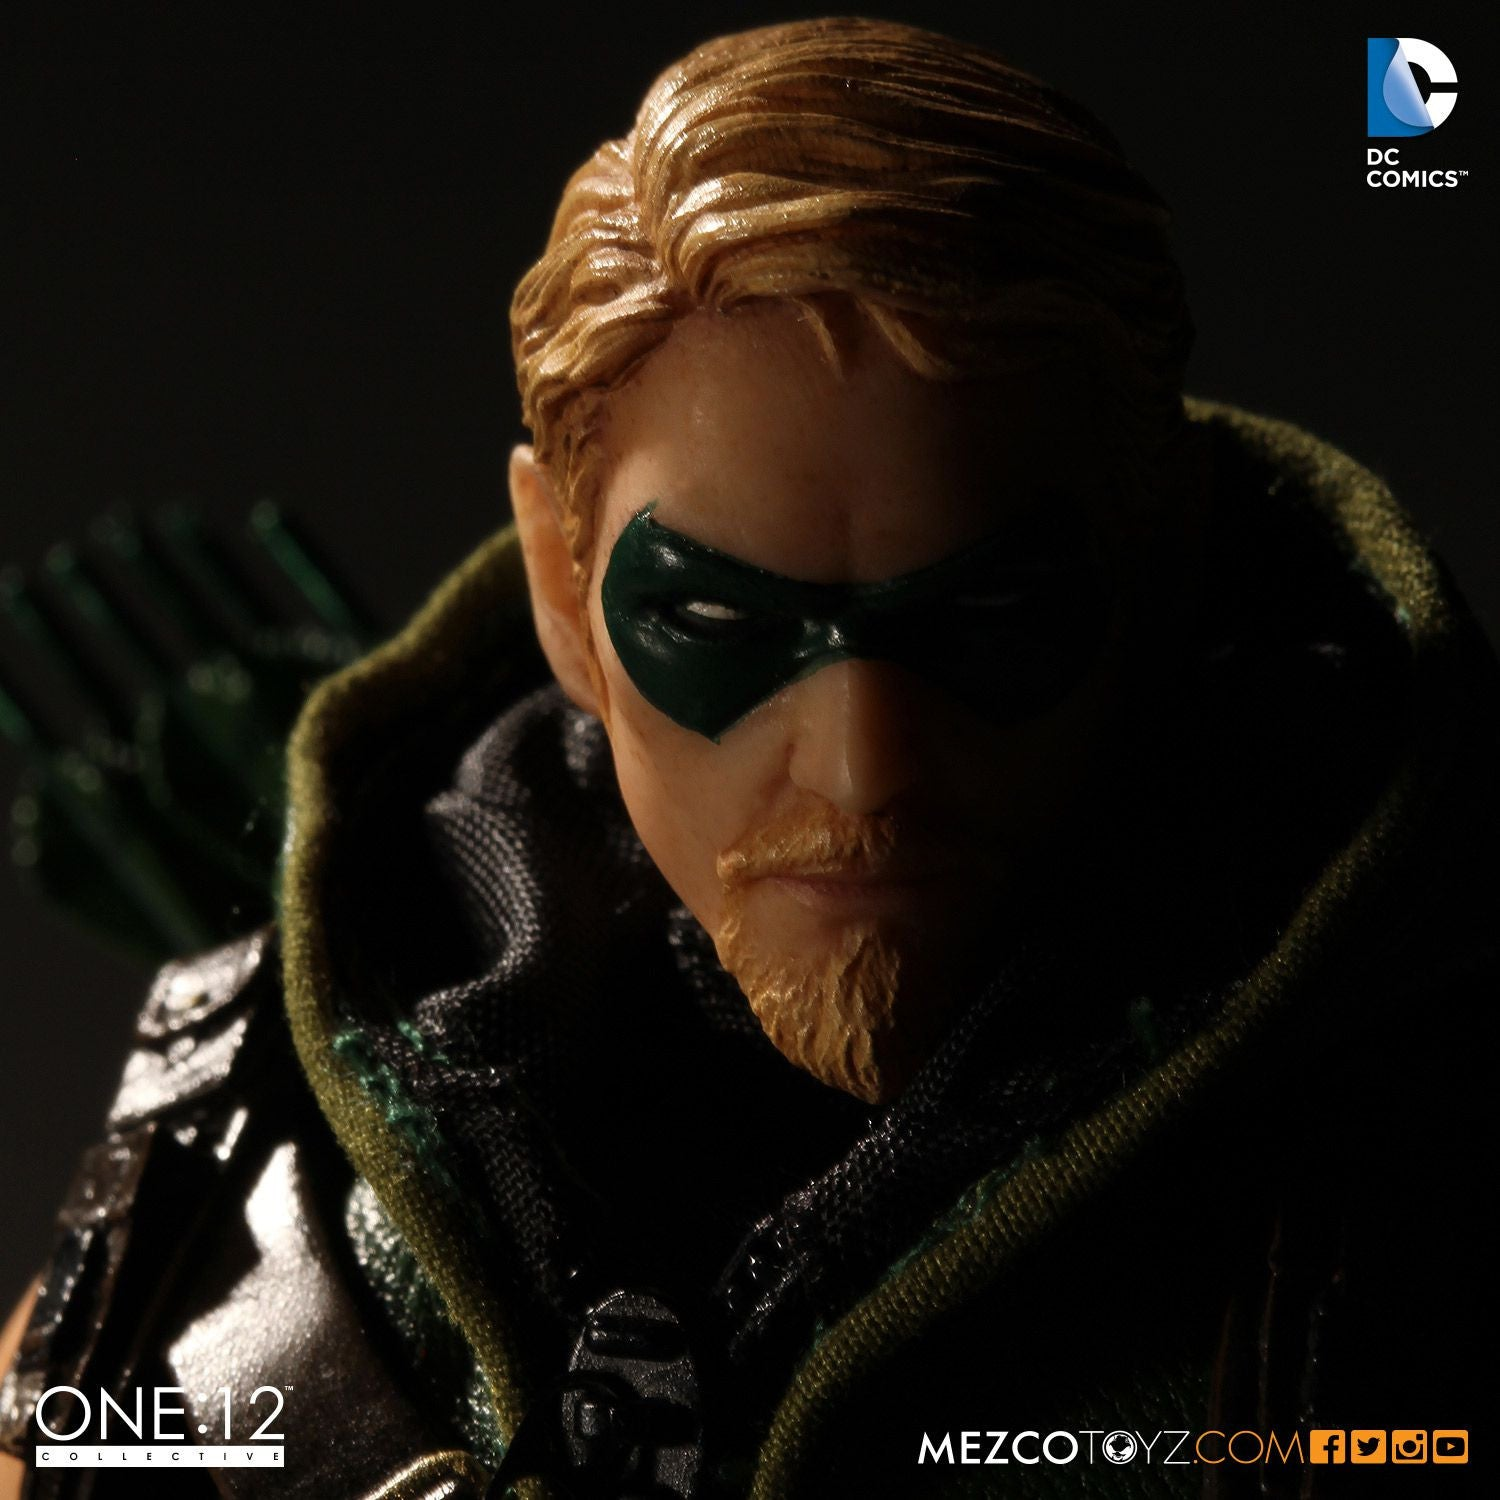 Mezco - One:12 Collective - Green Arrow - Marvelous Toys - 6